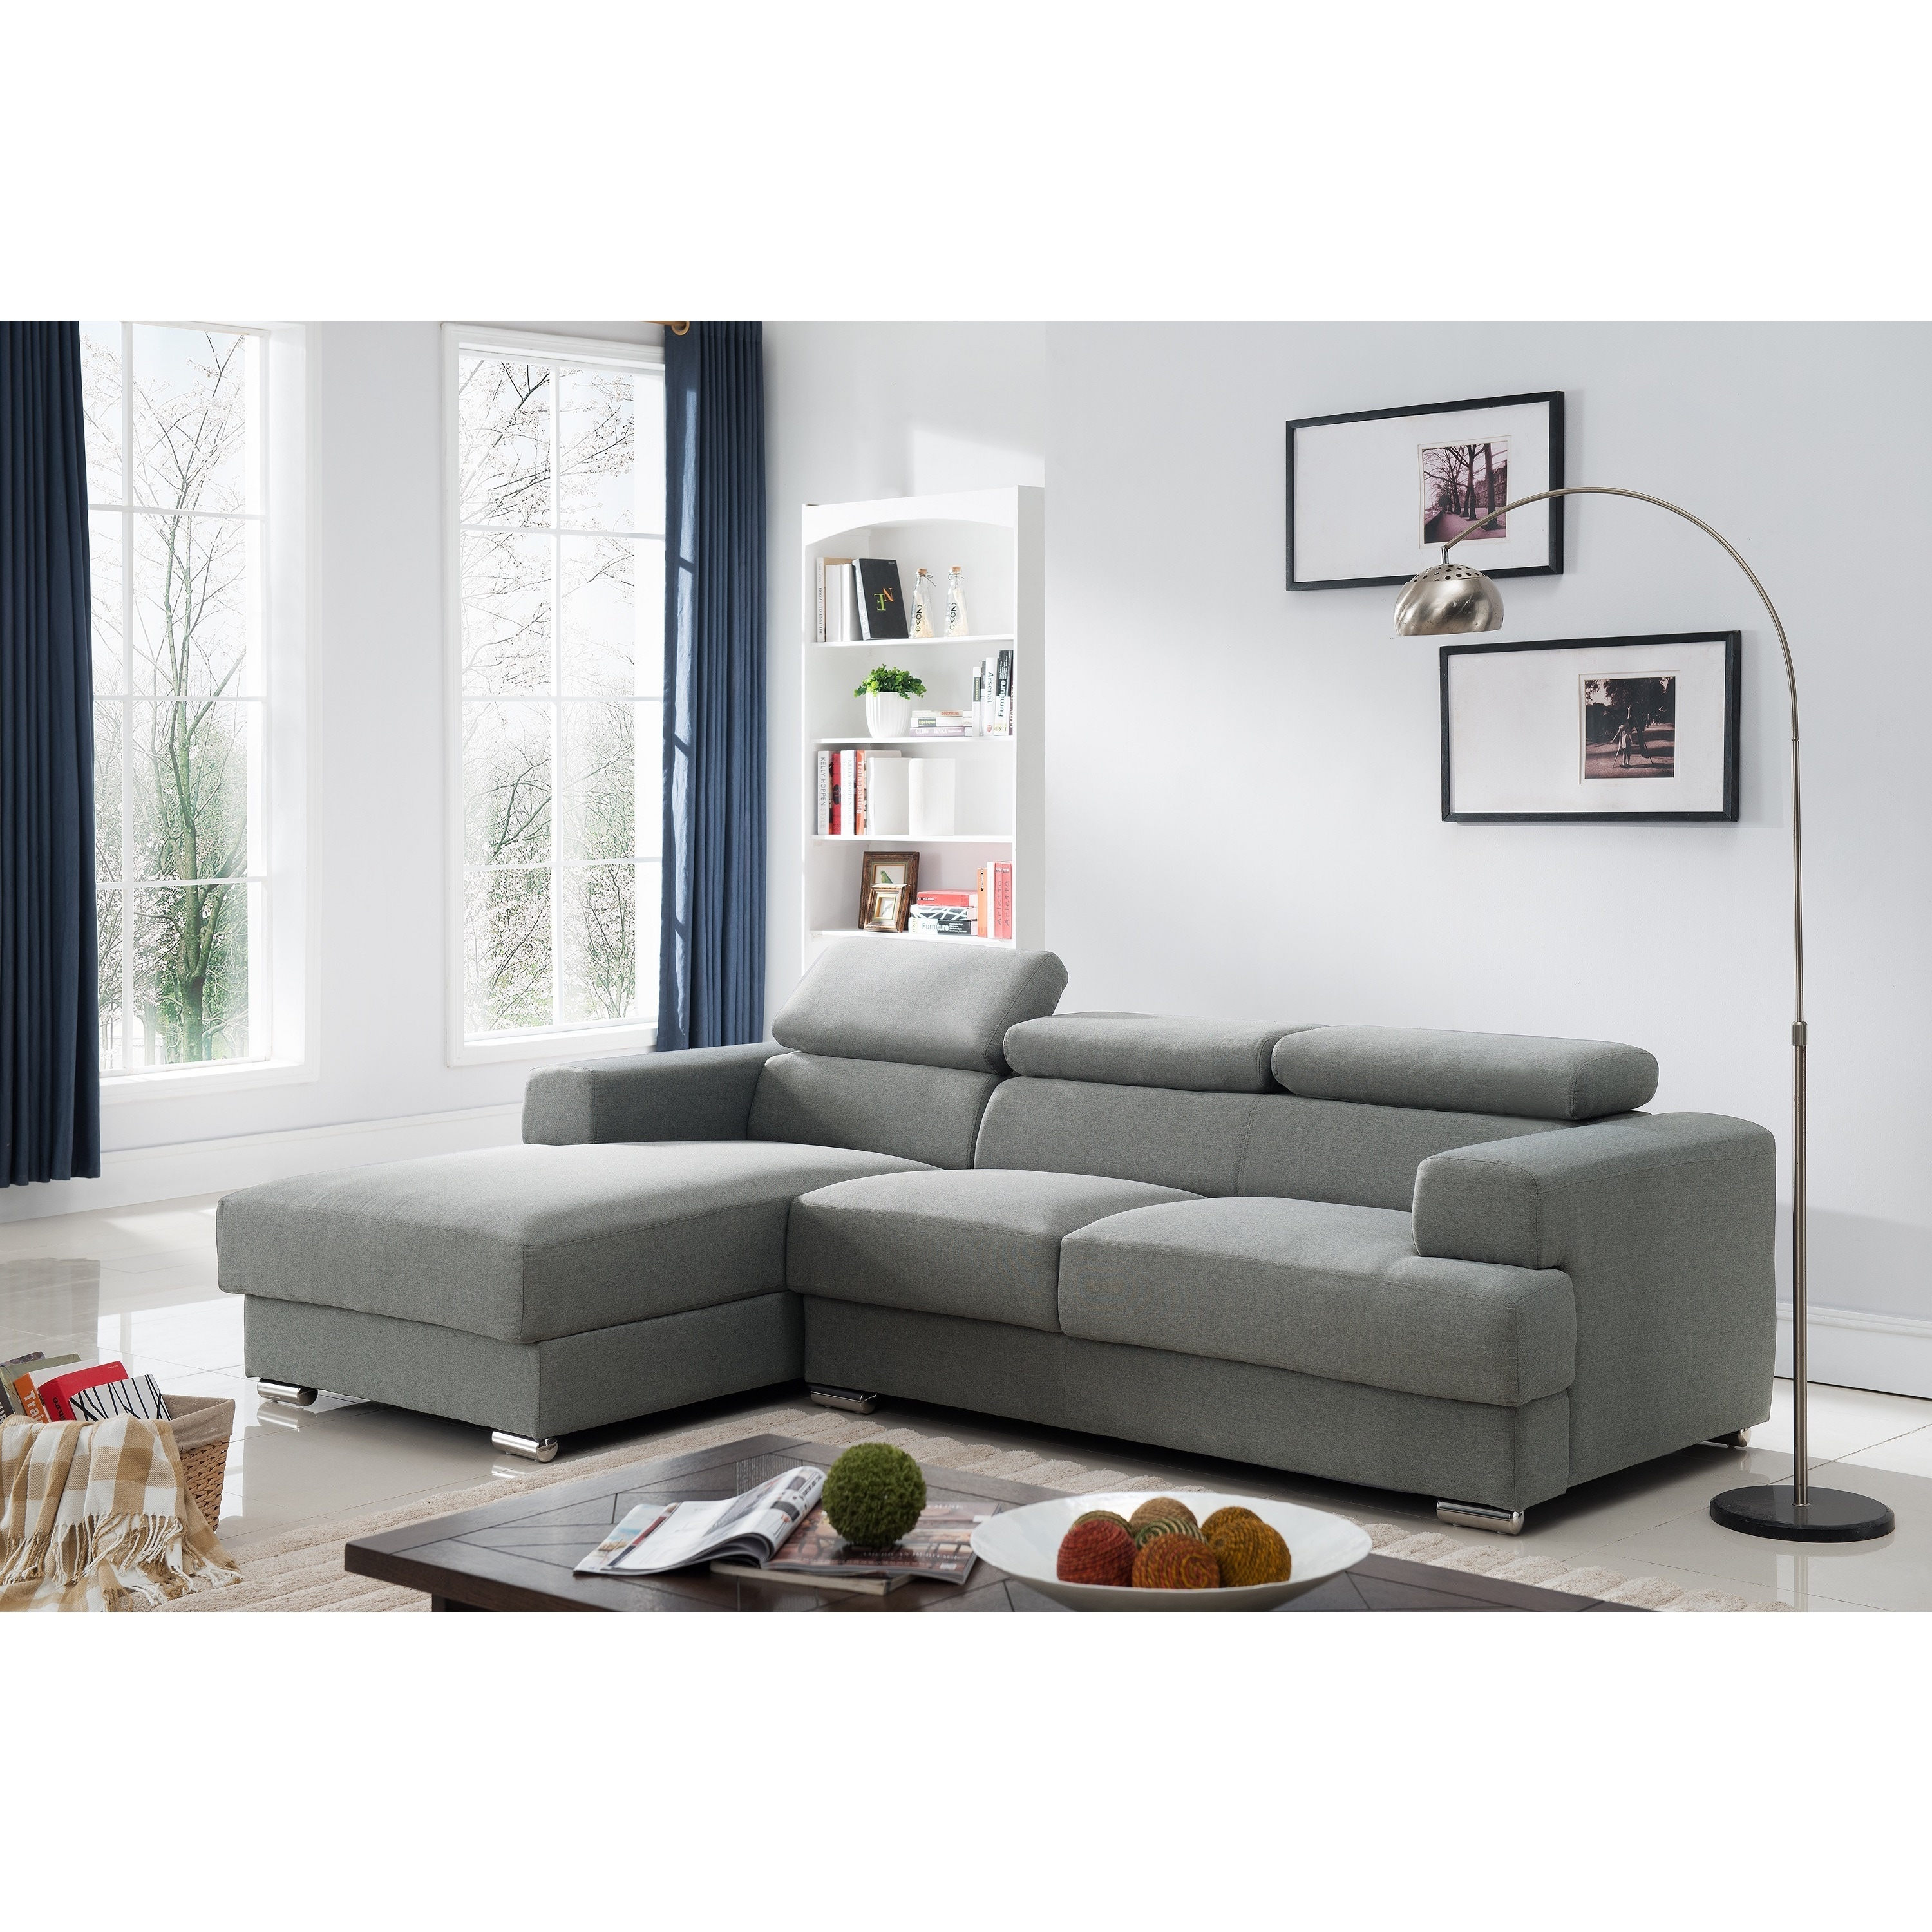 Gabriel Fabric Contemporary Sectional Sofa Set